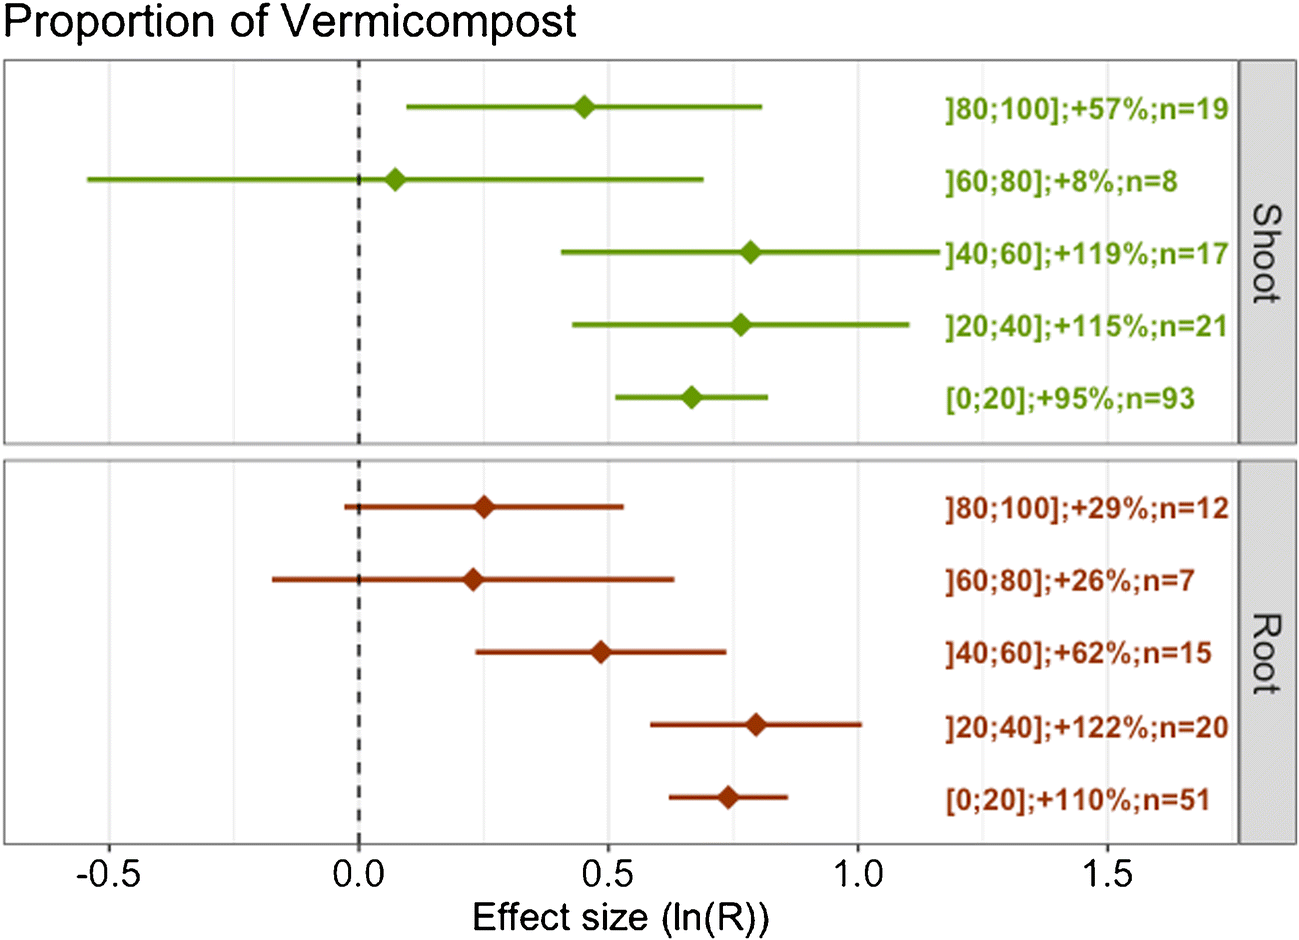 Vermicompost significantly affects plant growth  A meta